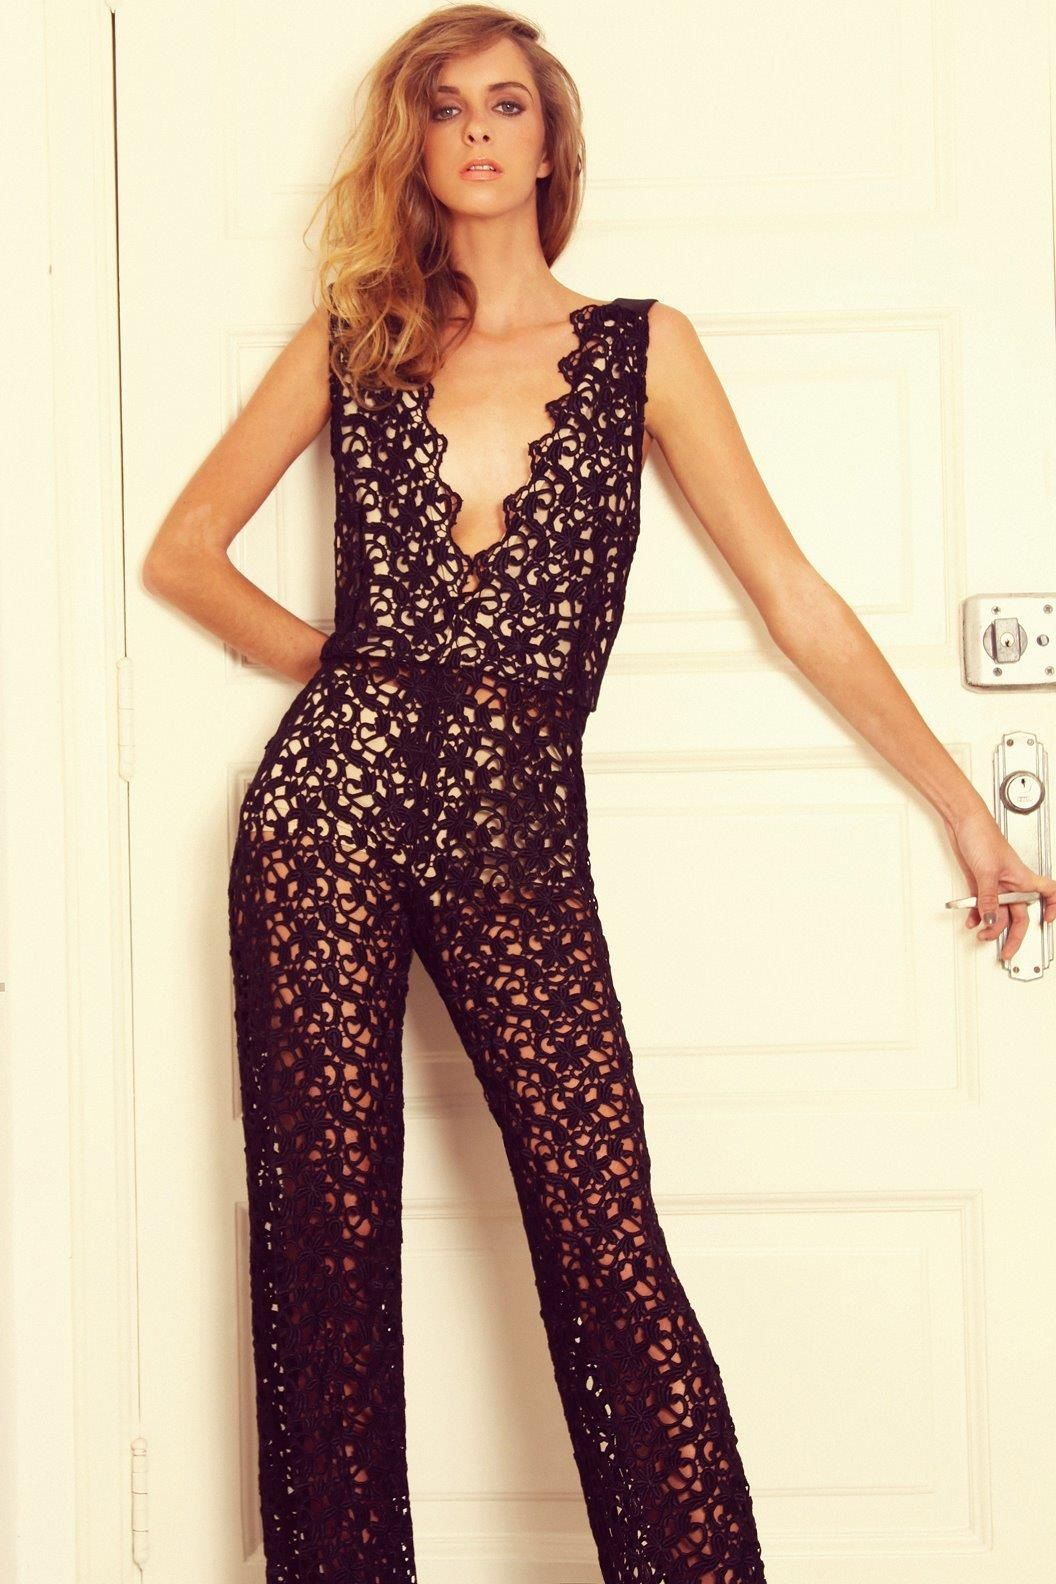 Lace bodysuit south africa   best images about Itus Just LACE on Pinterest  Sexy Lace and